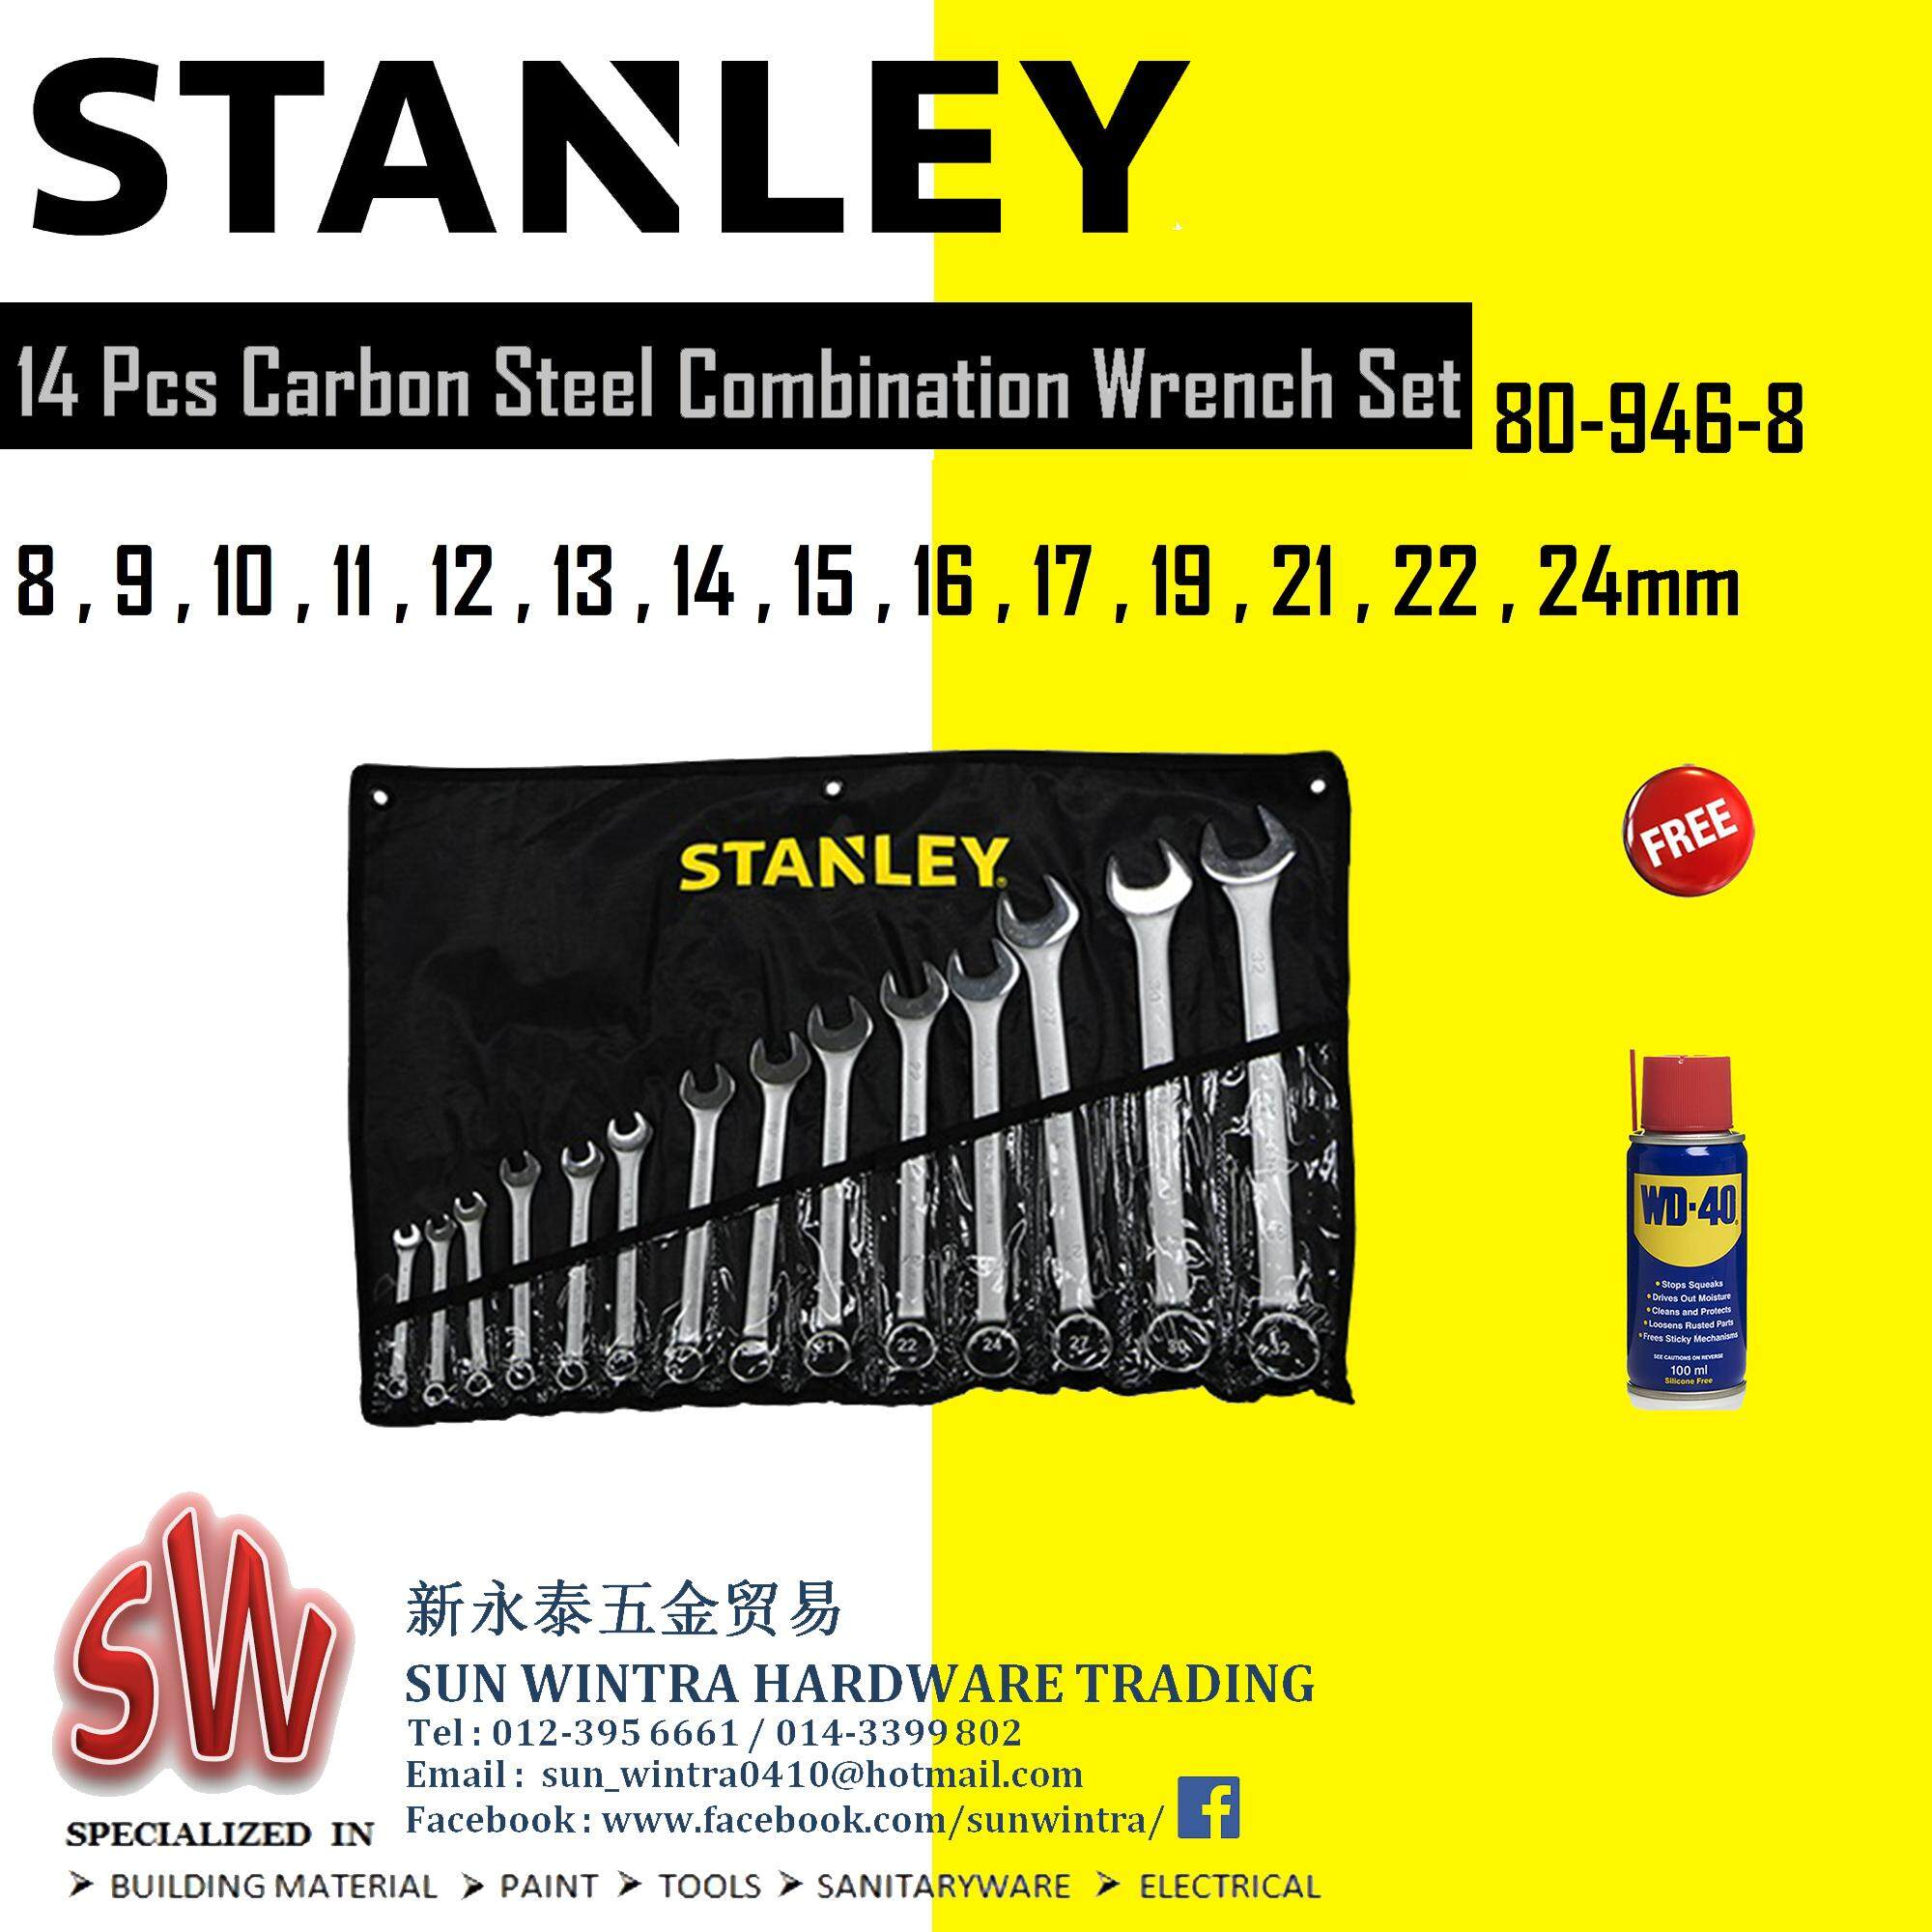 Cek Harga 277ml Wd 40 Multipurpose Spray Terbaru Malaysian Wd40 Belt Dressing Specialist Stanley Combination Spanner Set 14pcs Foc 100ml